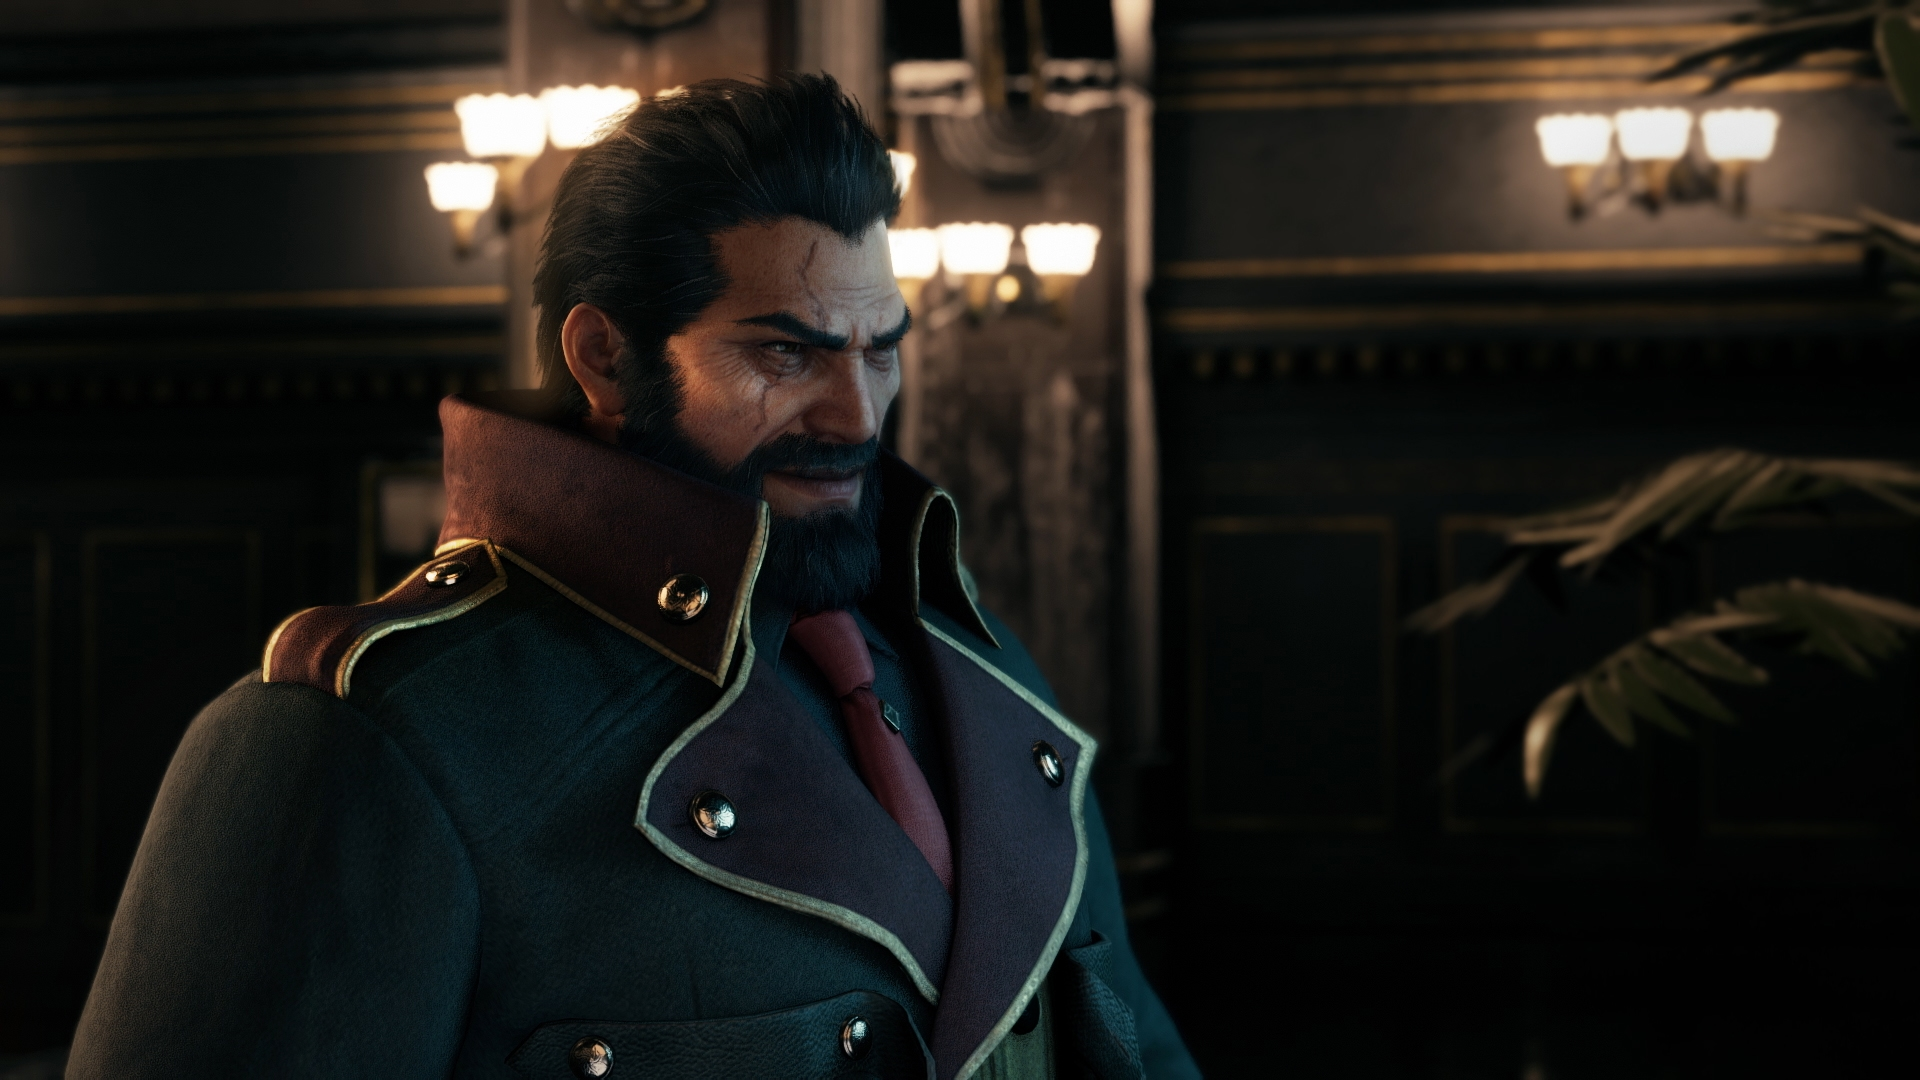 New Final Fantasy 7 Remake screens show iconic scenes